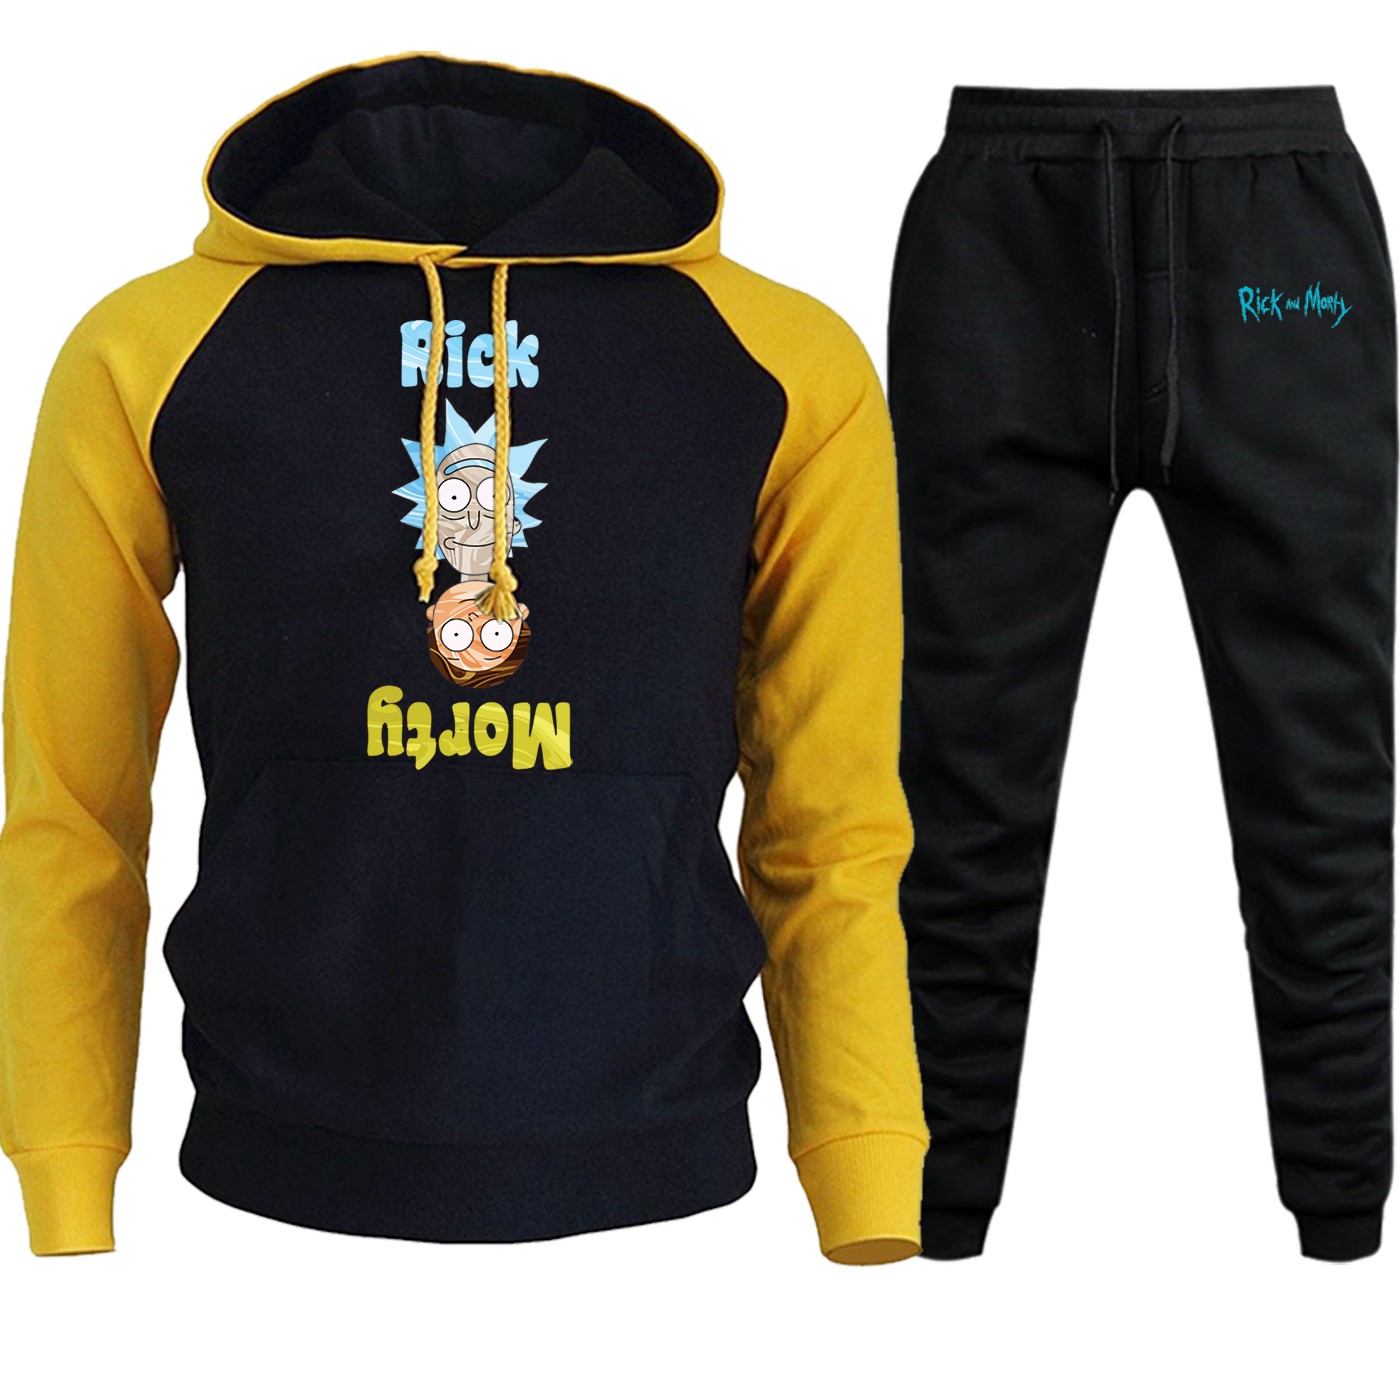 Rick And Morty Streetwear Hoodies Raglan Mens Suit Autumn Winter 2019 New Cartoon Funny Pullover Hip Hop Hoody+Pants 2 Piece Set